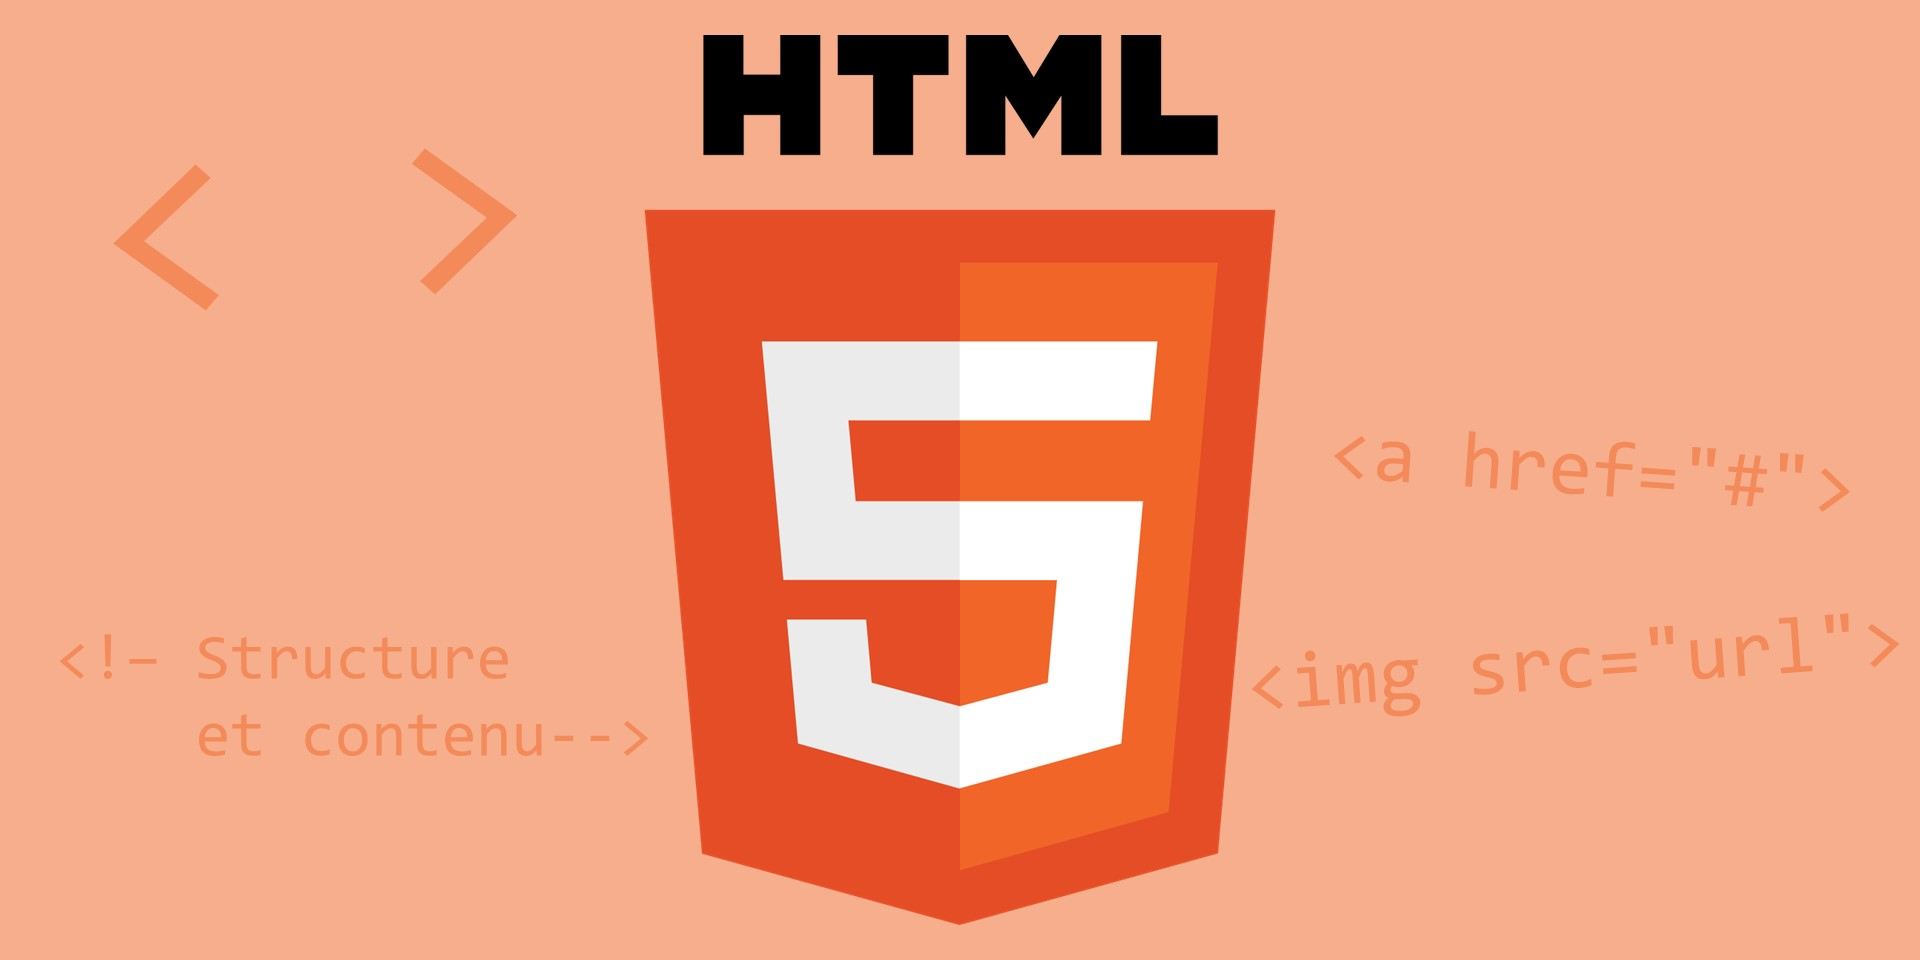 Composer vos trois pages HTML